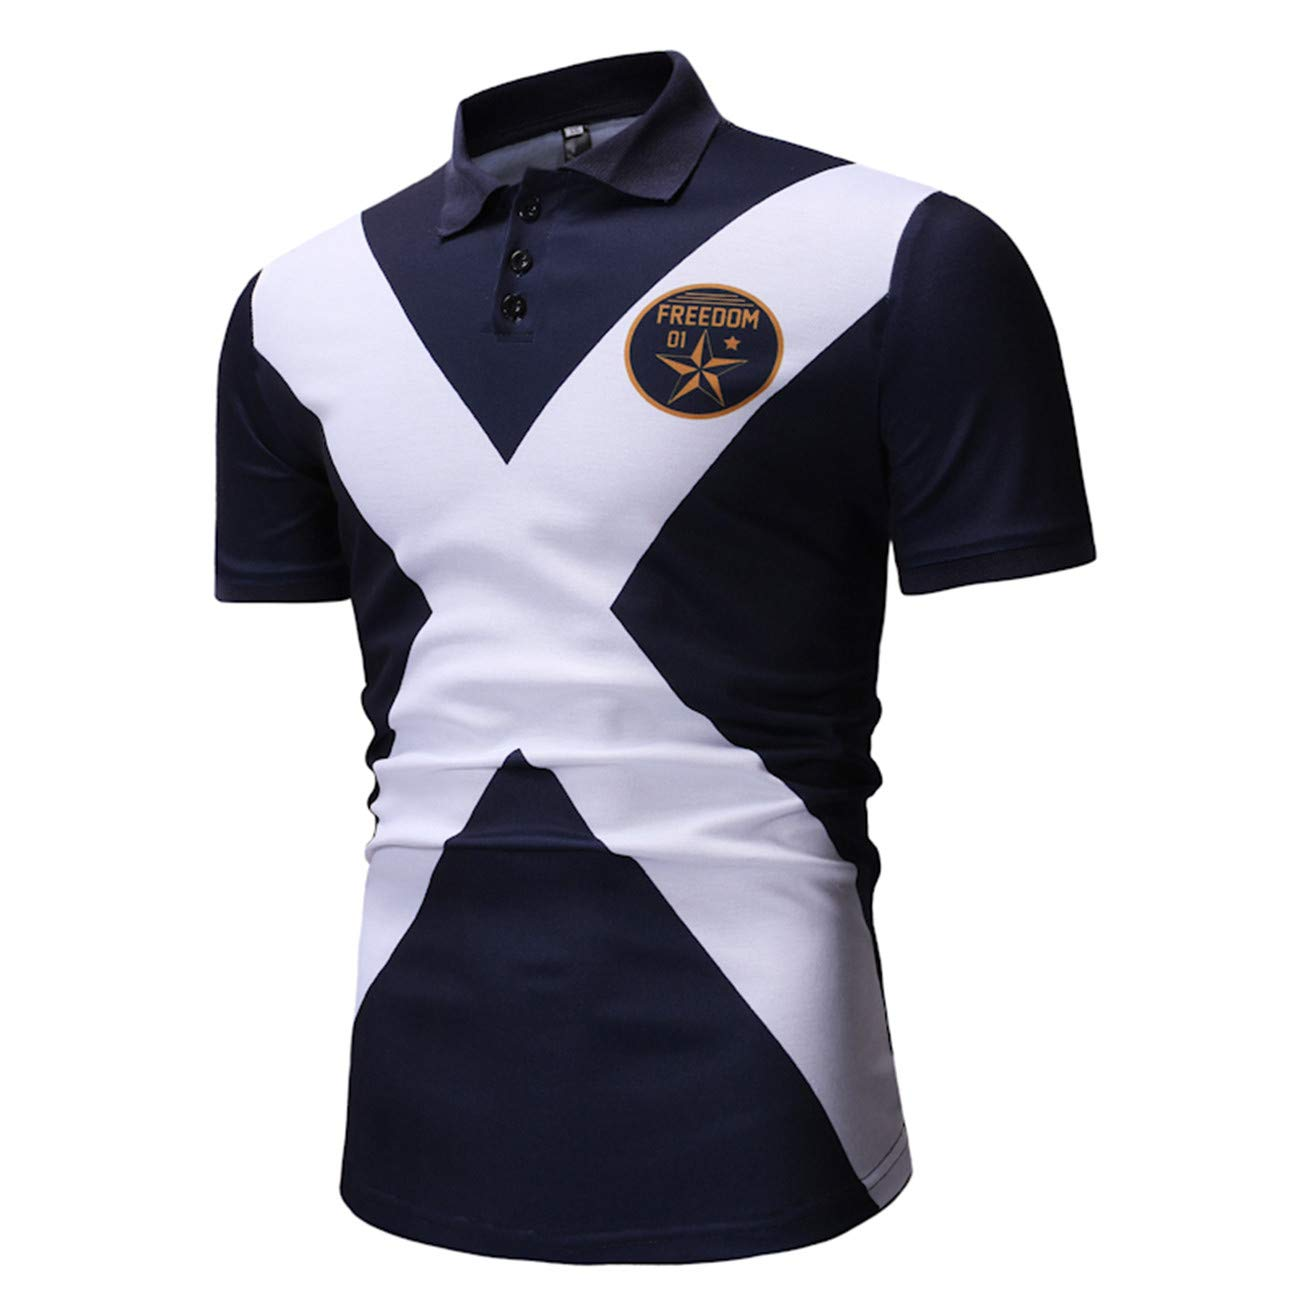 Mens Floral Printed Short Sleeve Leisure and Fashion Polo Shirt